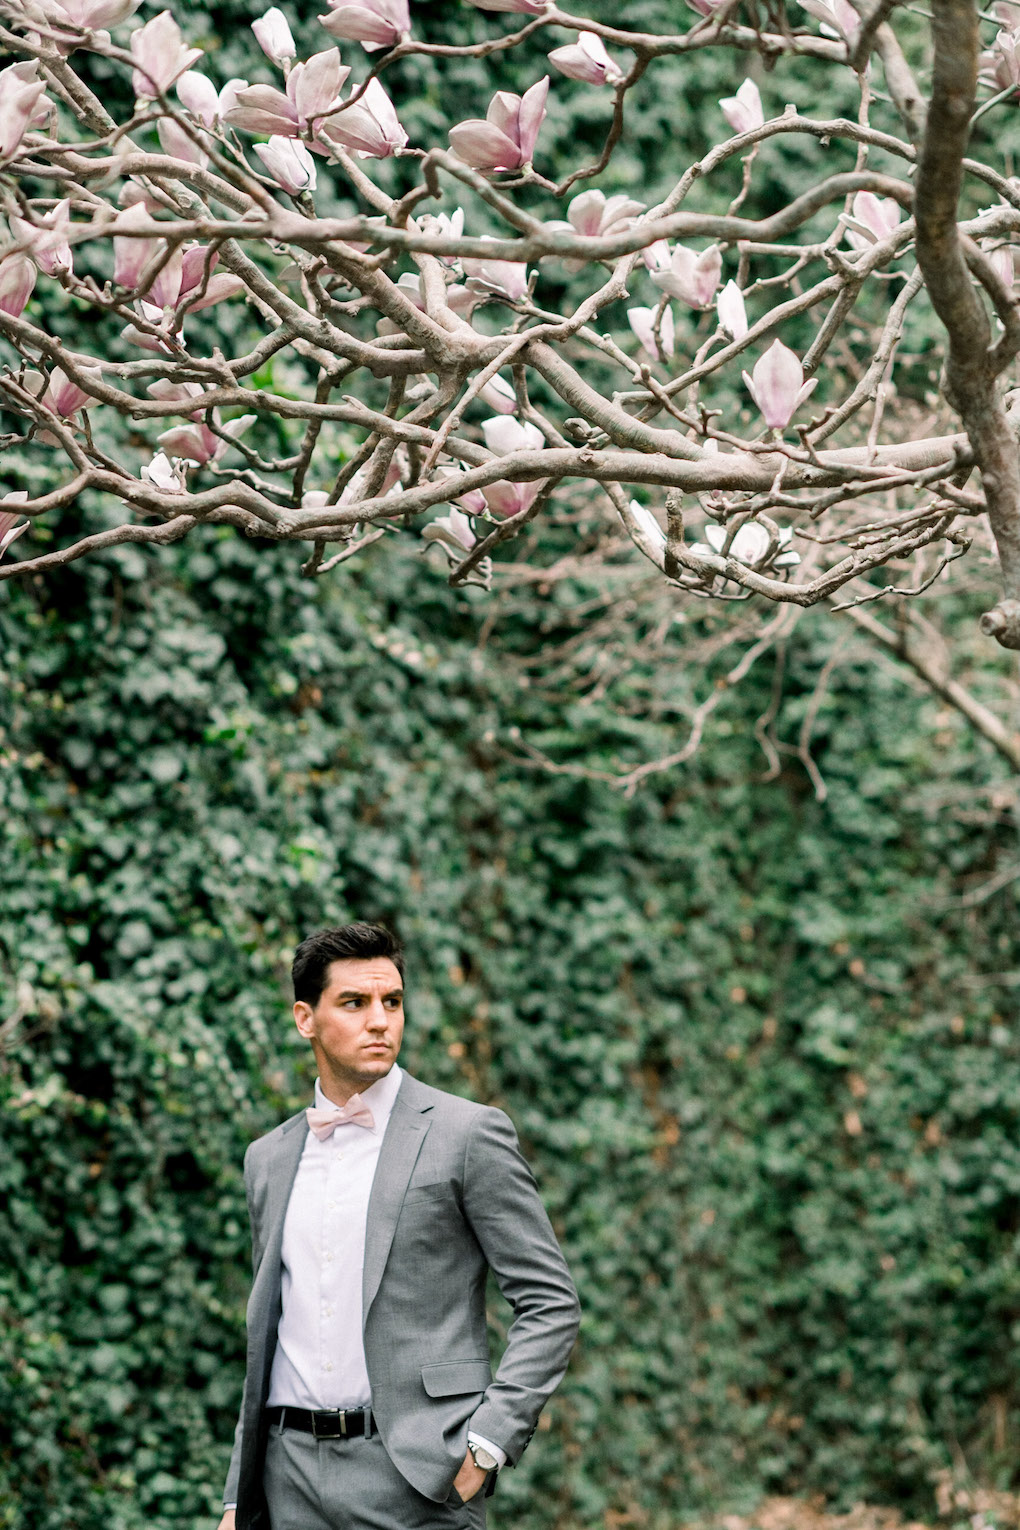 Outdoor wedding shots: Soft and Subtle Palettes of Spring Blossoms | Editorial Shoot at The Renaissance Pittsburgh by Exhale Events. See more inspiration at exhale-events.com!